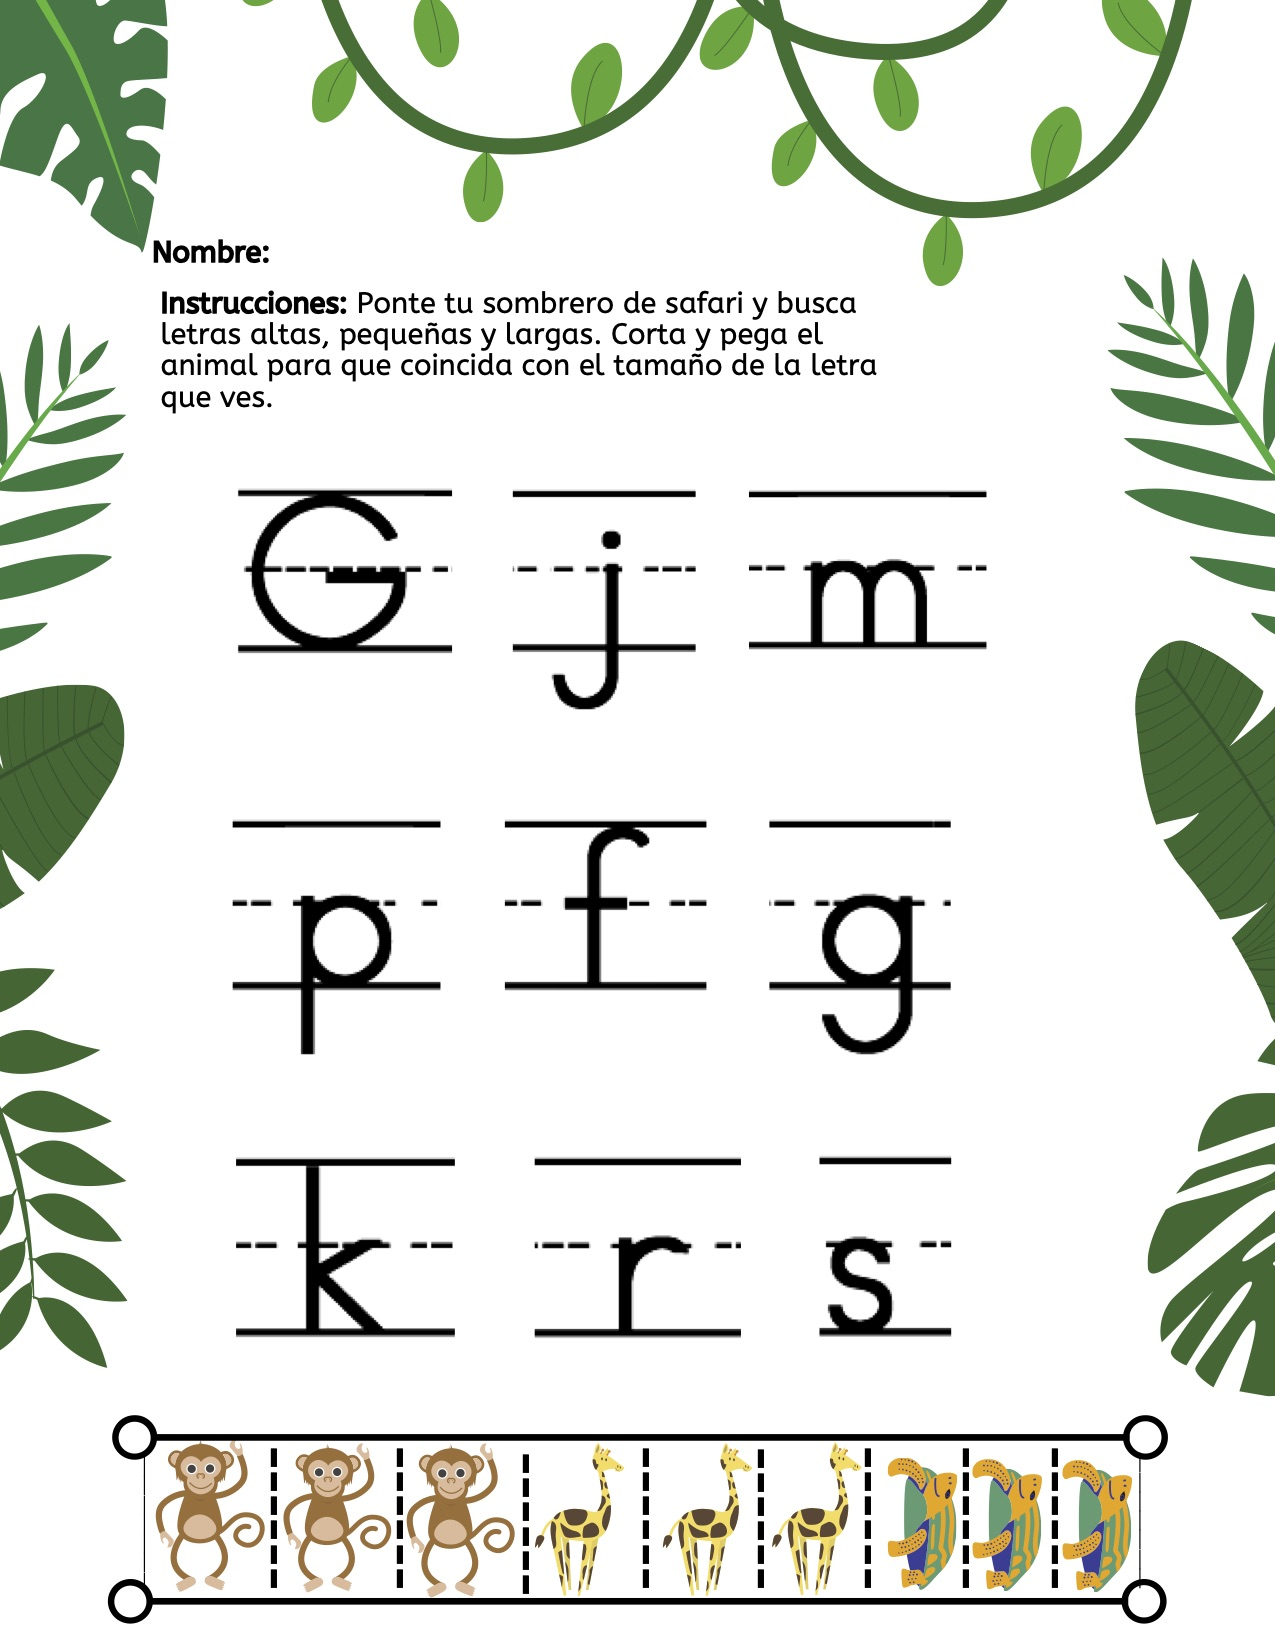 Spanish Cut Amp Paste Safari Letter Size Worksheet Kyu R